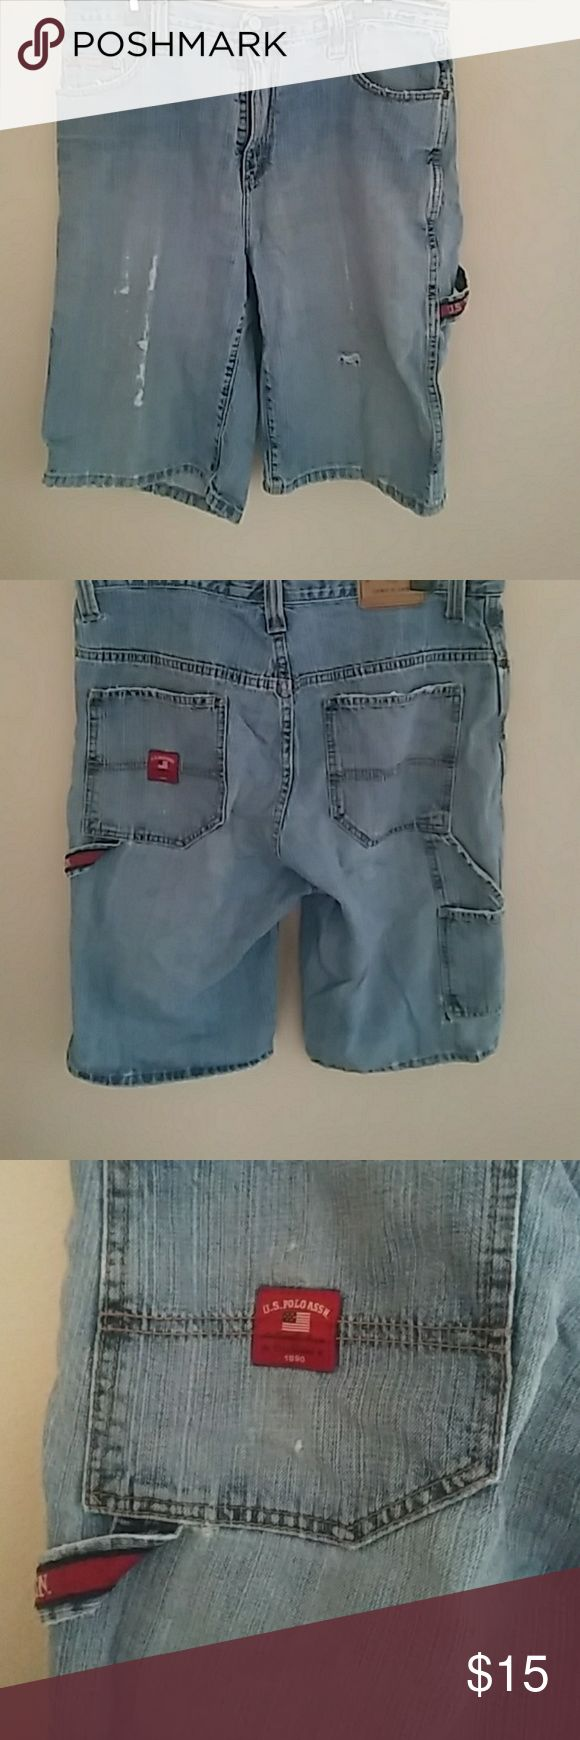 Polo jean shorts Men's 33 u.s.polo shirts worn painter shorts U.S. Polo Assn. Shorts Jean Shorts